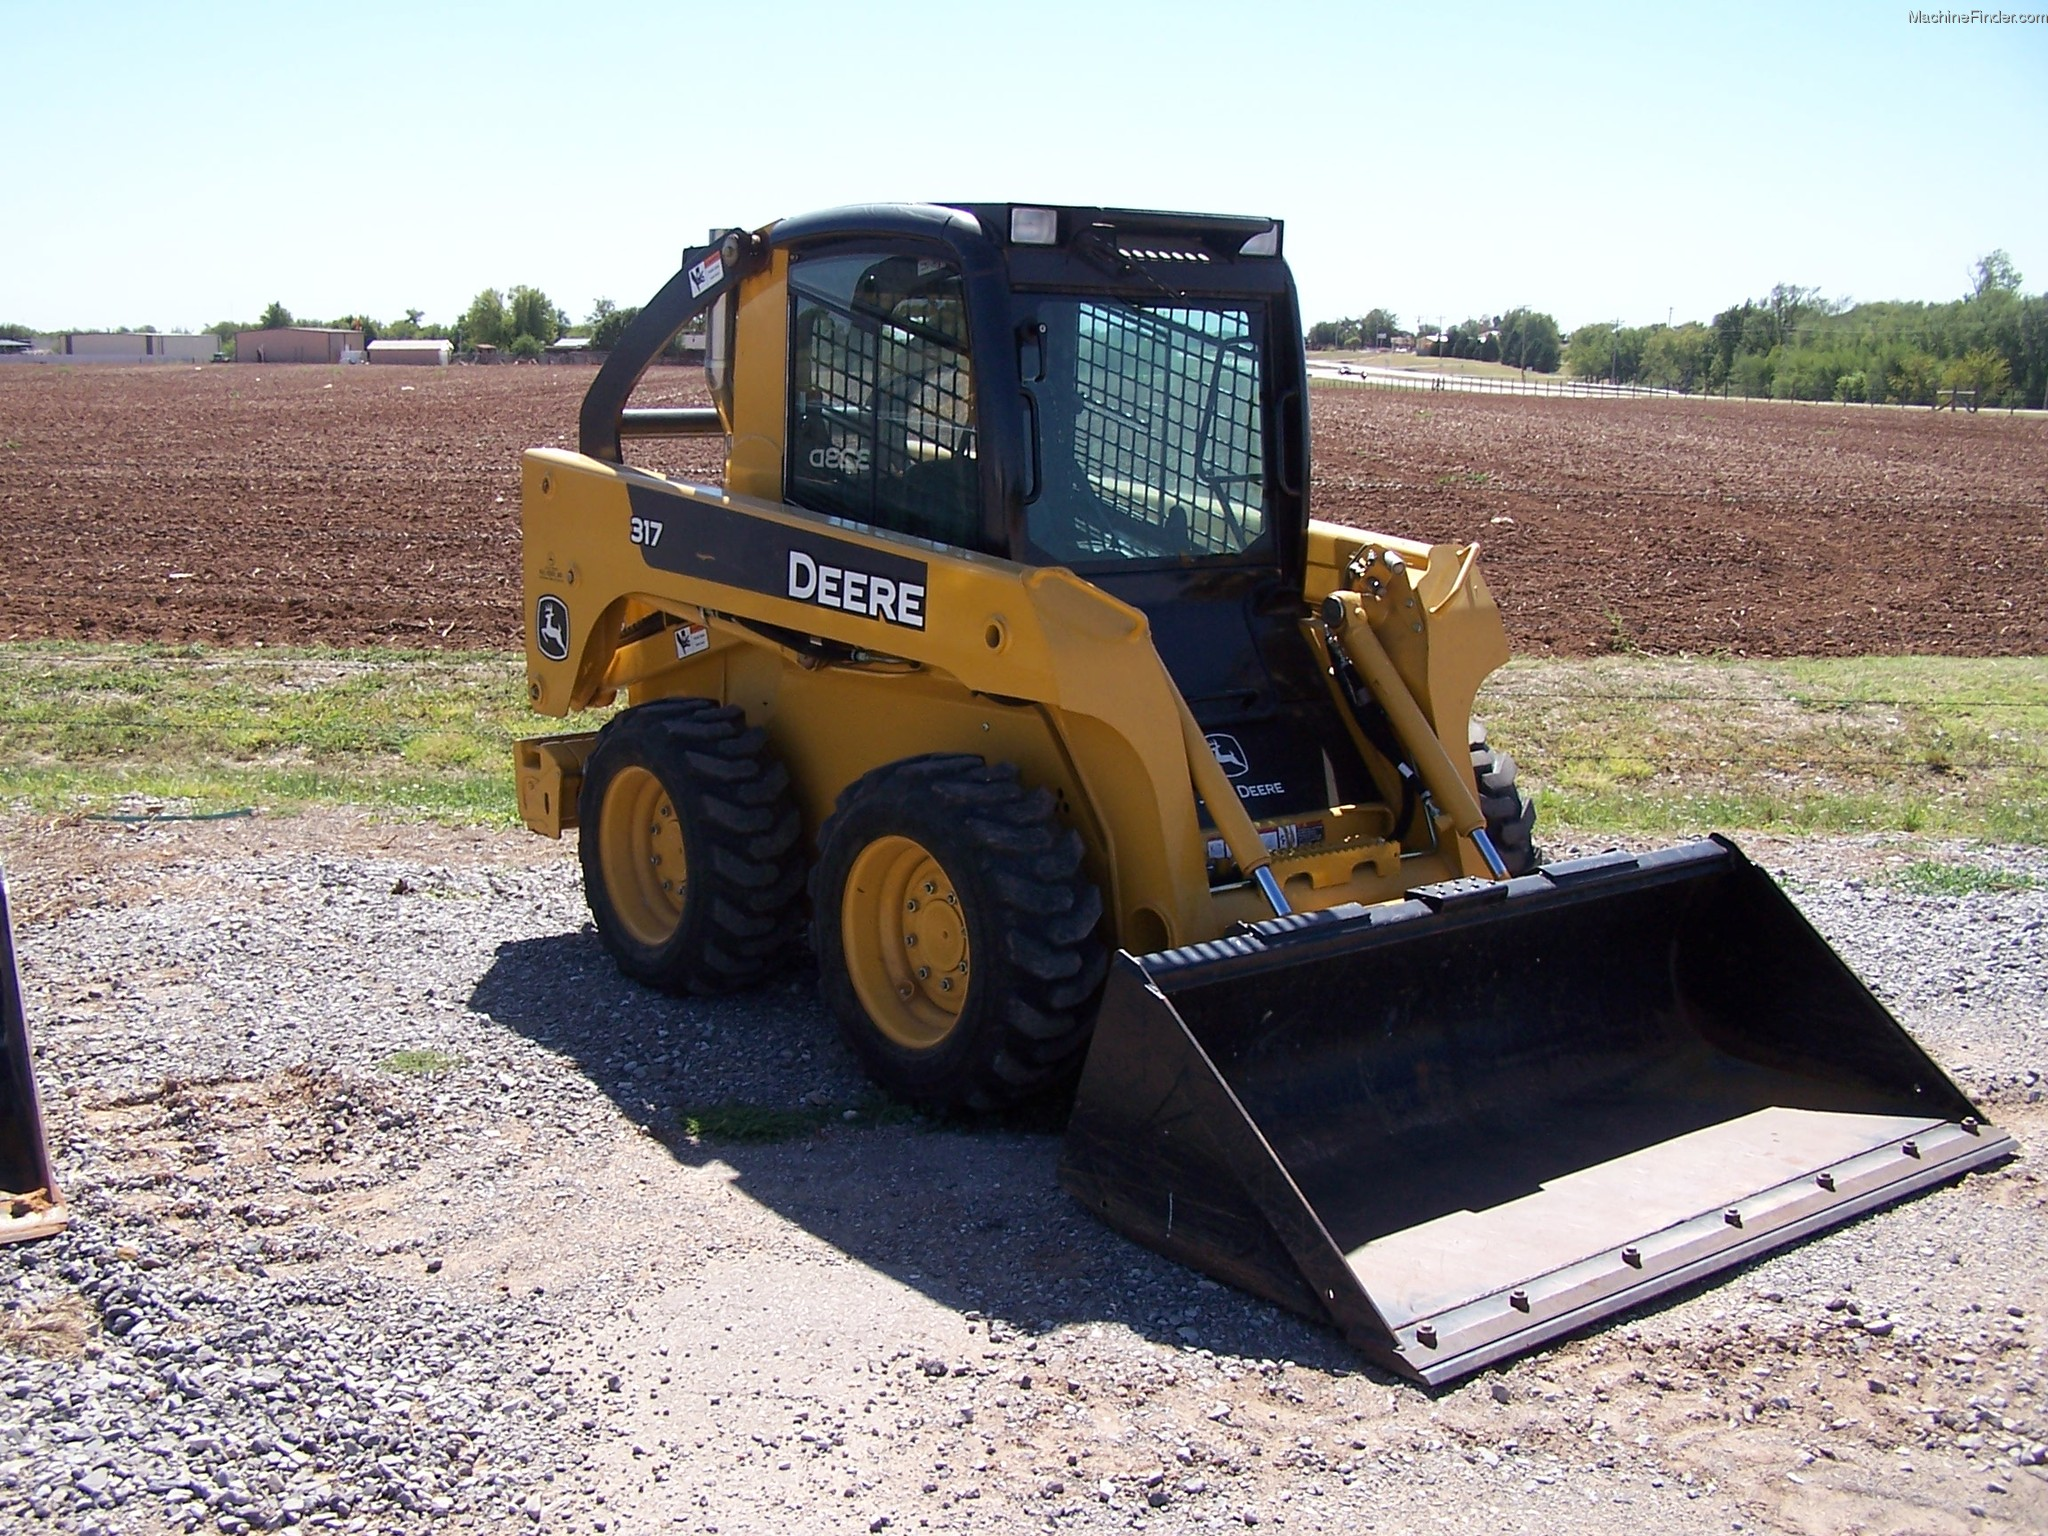 John Deere Skid Steer >> Job Site Favorites The John Deere 317 Skid Steer